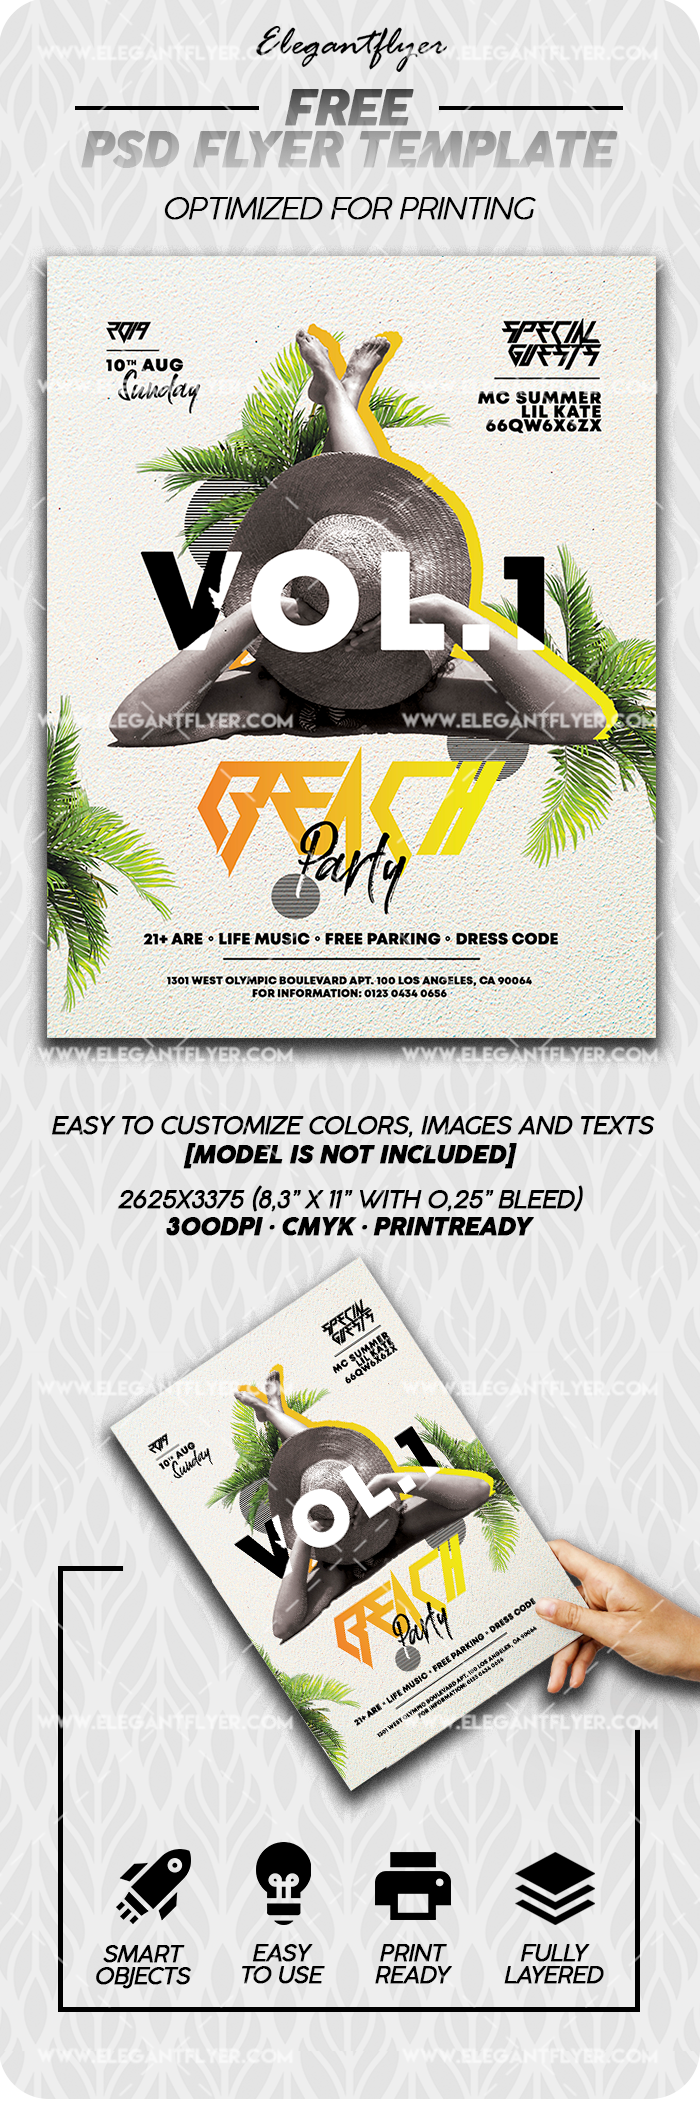 Beach Party – Free Flyer Template in PSD